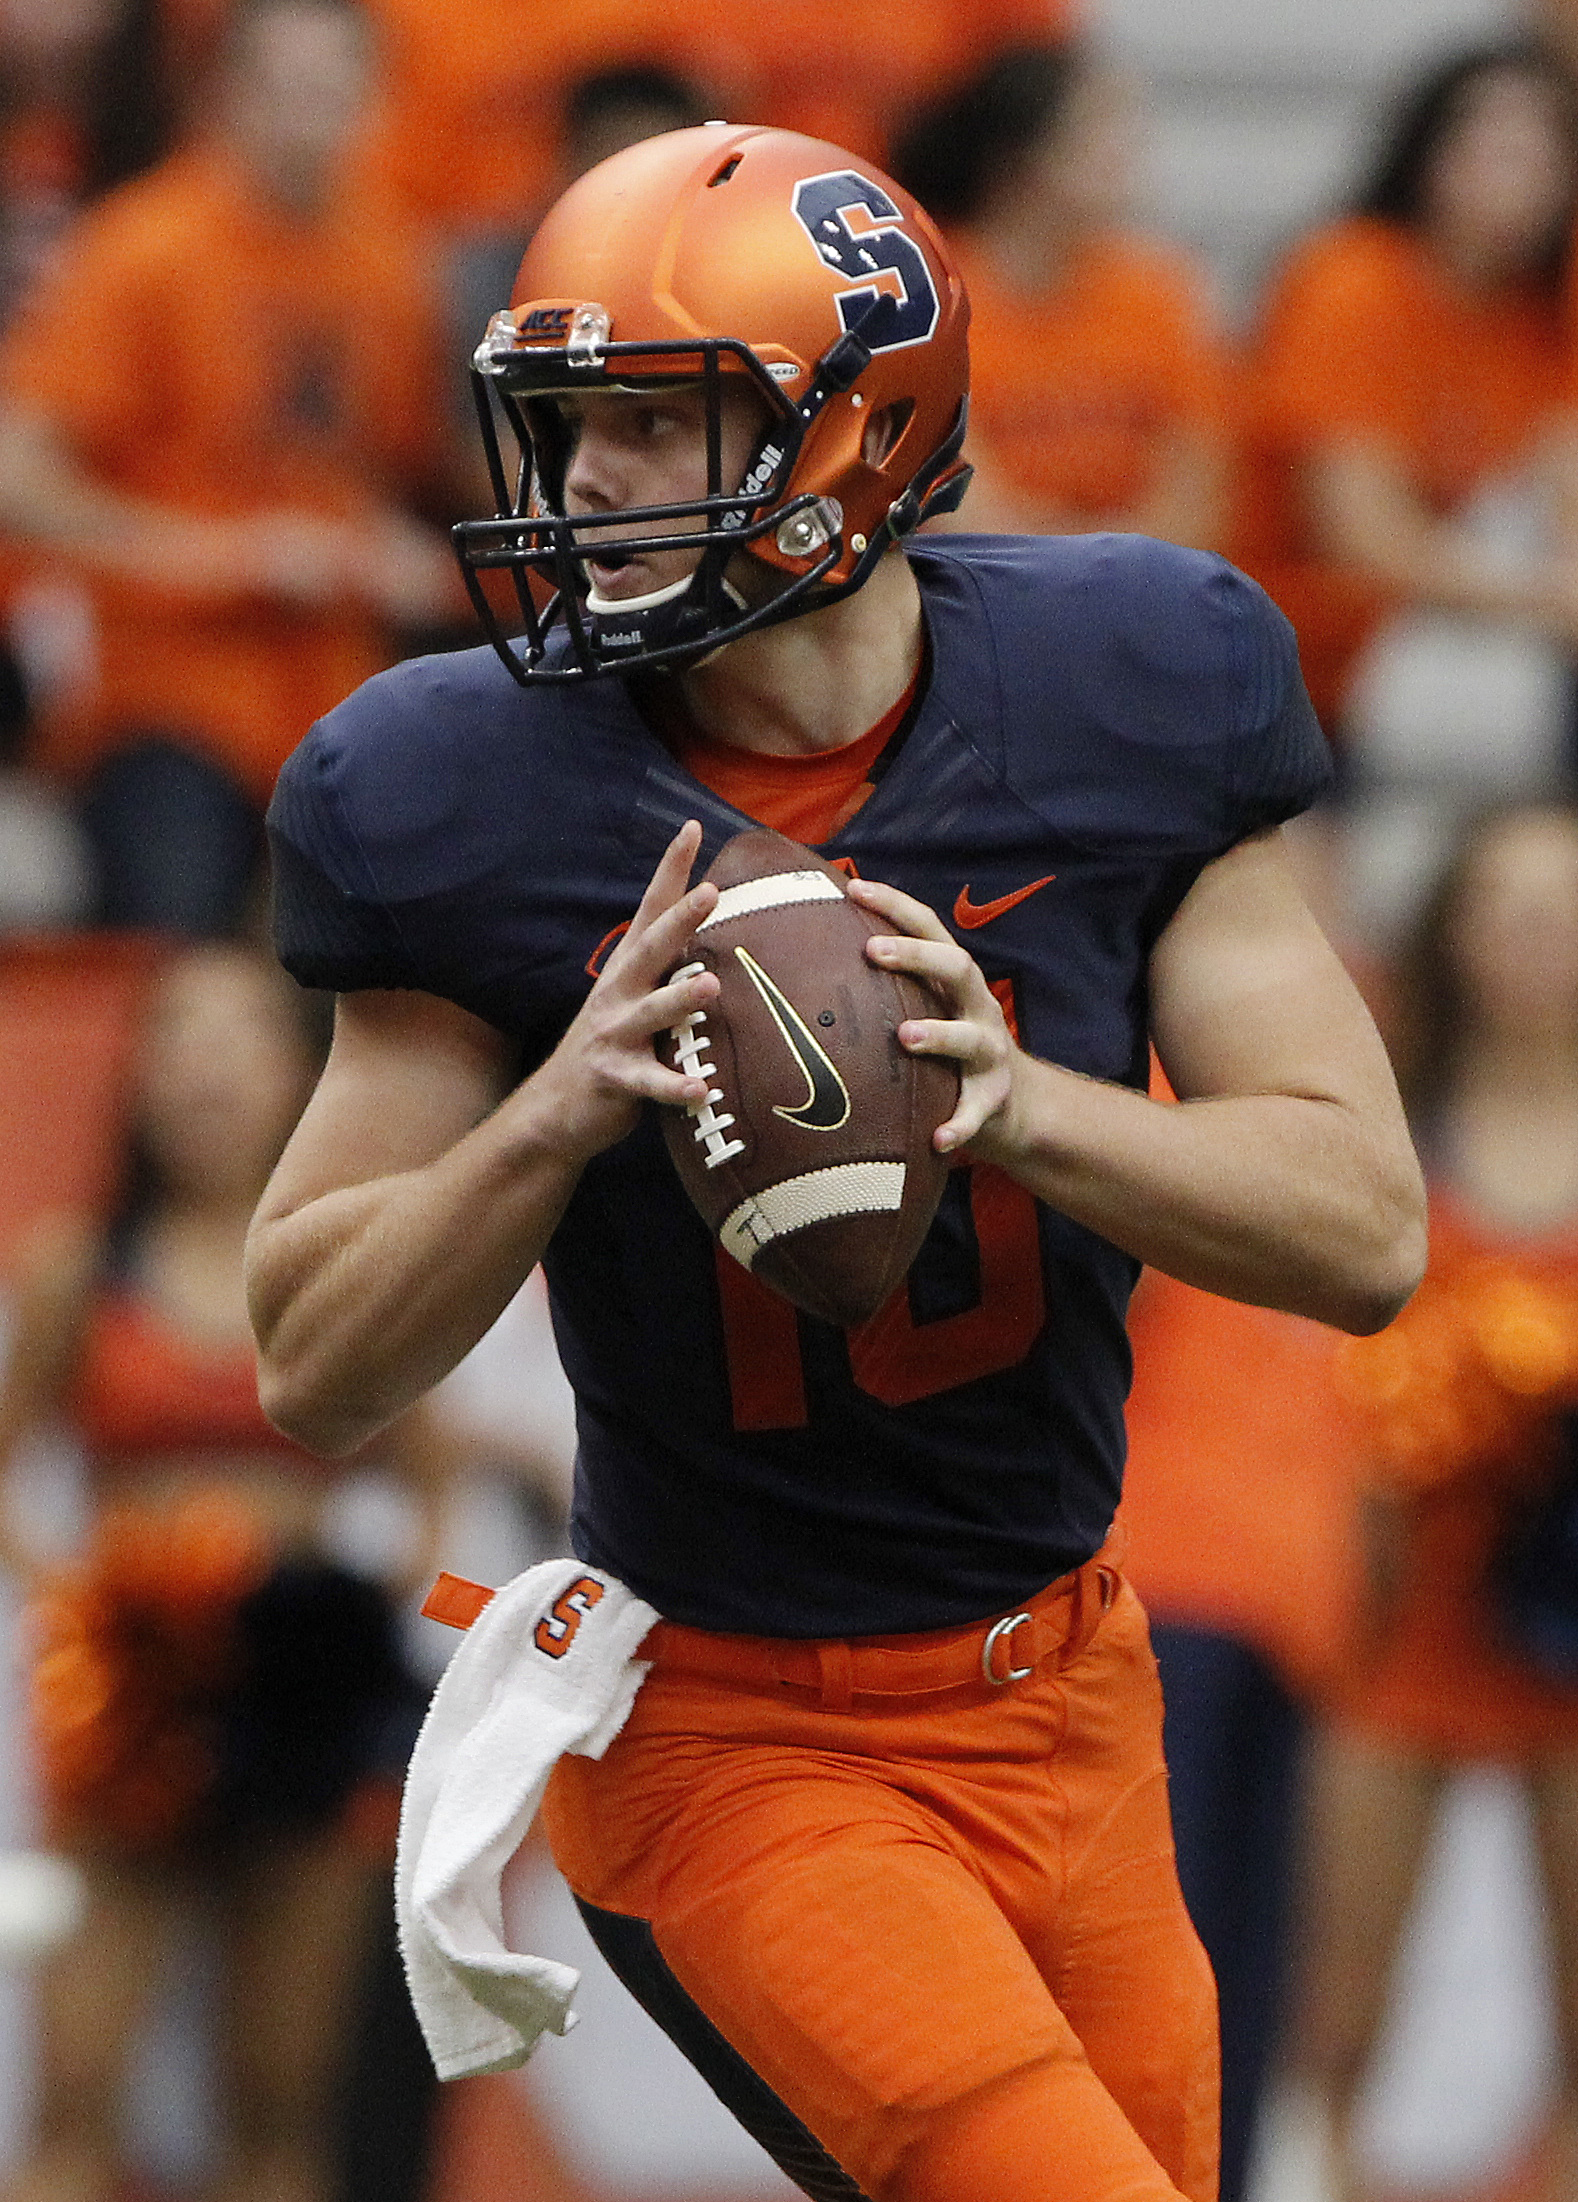 Syracuse's Zack Mahoney looks to pass the ball in the second half of an NCAA college football game against Central Michigan in Syracuse, N.Y., Saturday, Sept. 19, 2015. Syracuse won 30  27. (AP Photo/Nick Lisi)